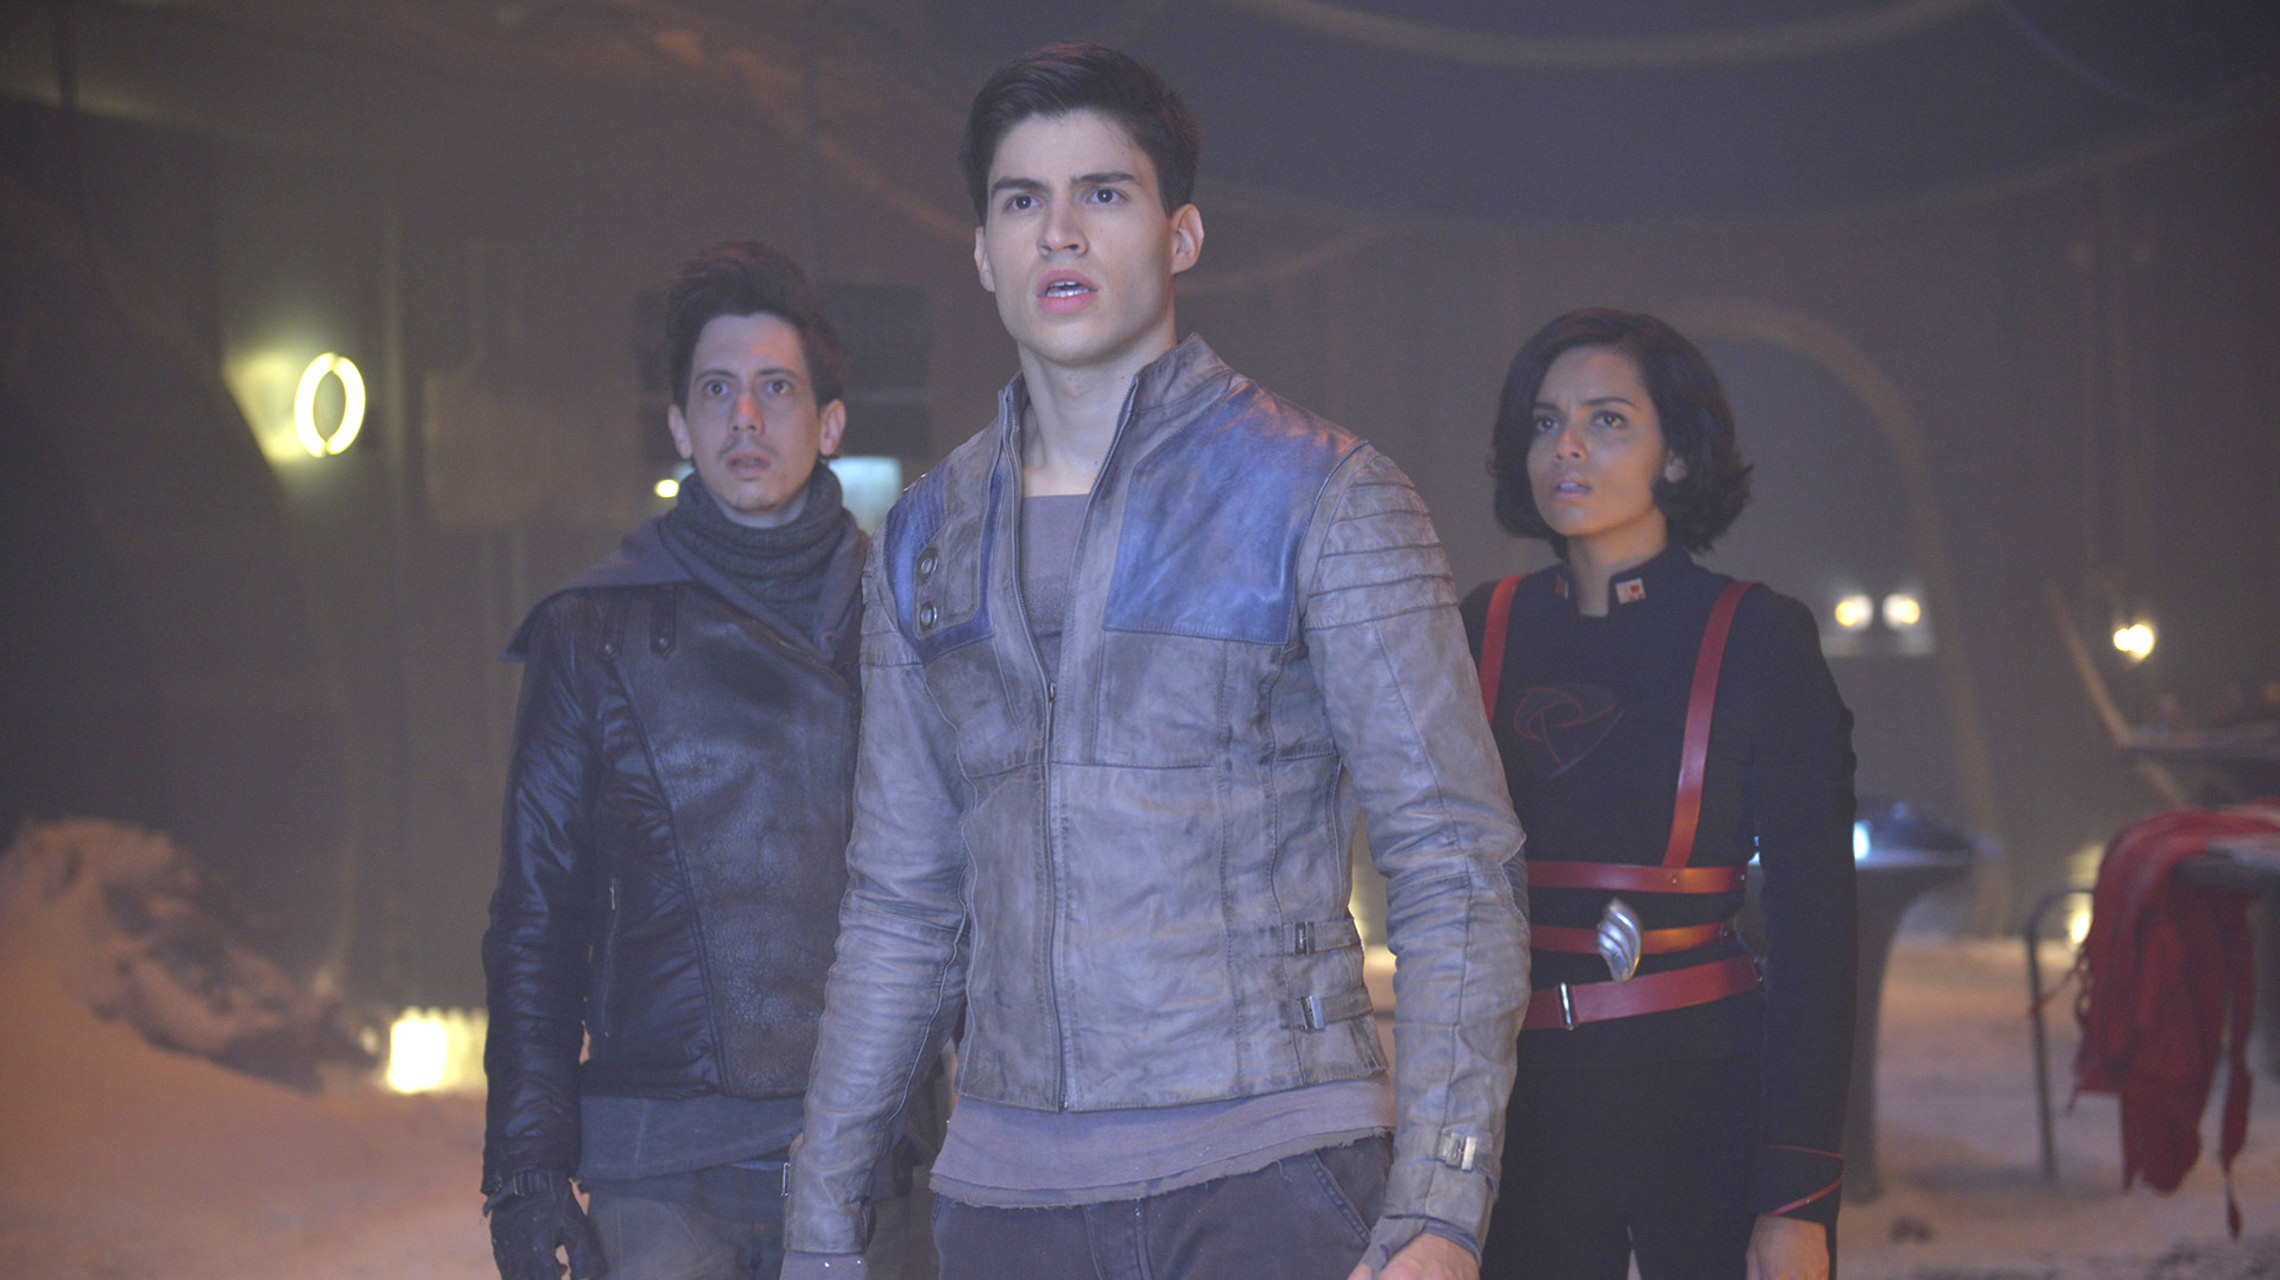 'Krypton' Teaser: First Look At Syfy's Superman Prequel